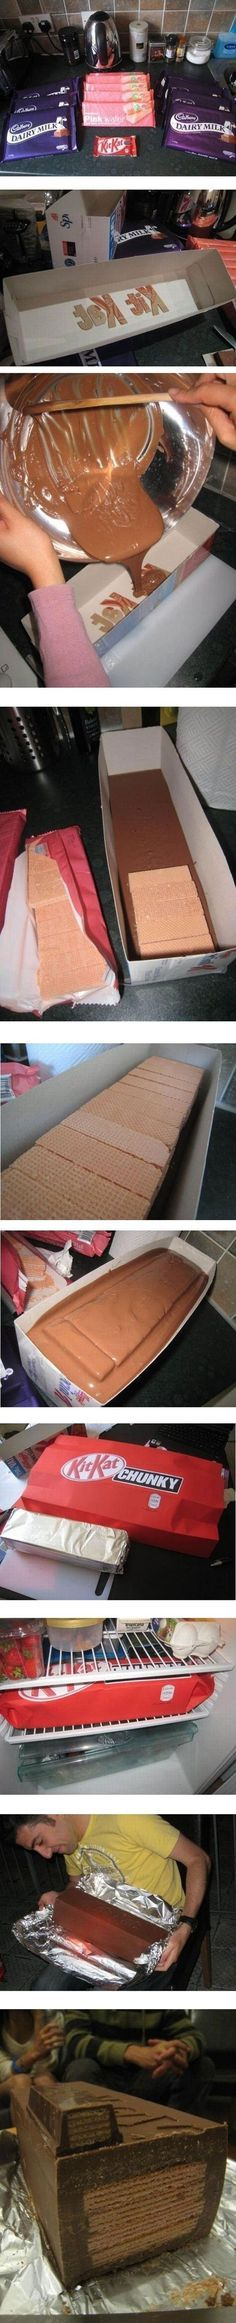 How ridiculous XD ....But awesome! HOW TO MAKE: A GIANT KIT KAT BAR! This would be such a fun gift!